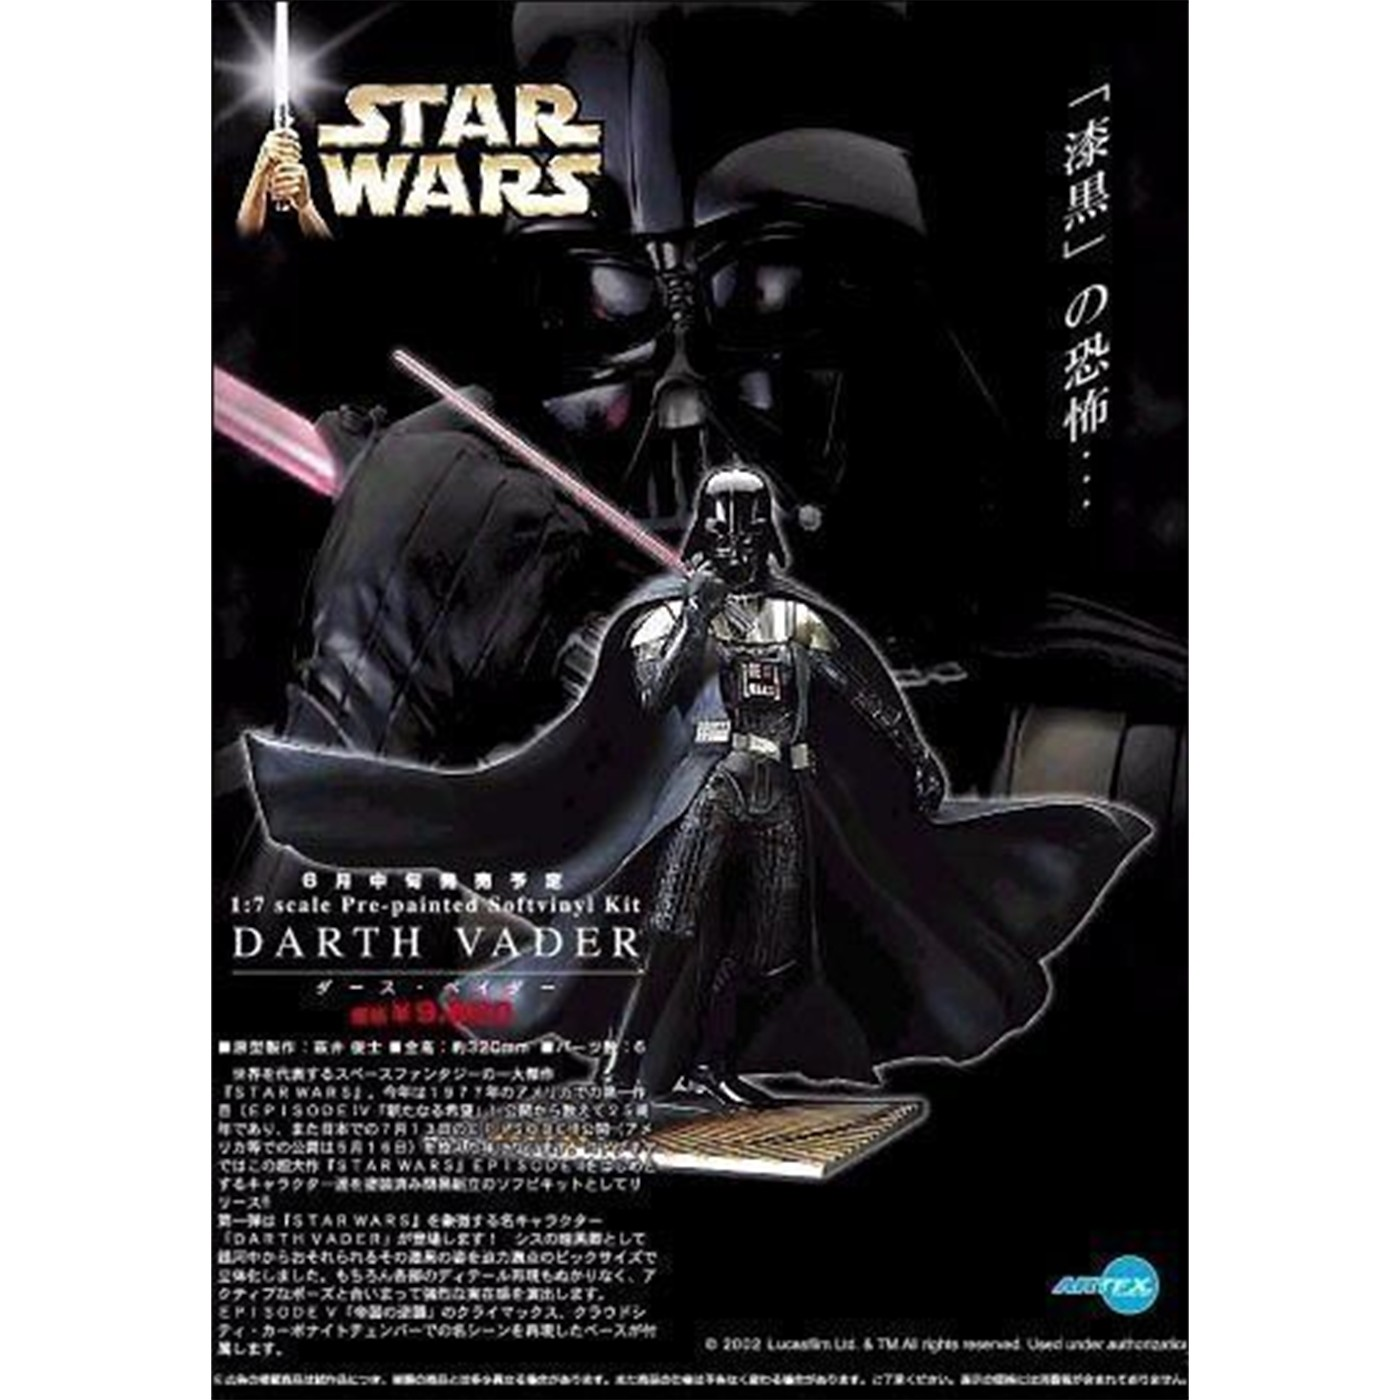 Darth Vader Statue Model Vinyl Kit 2